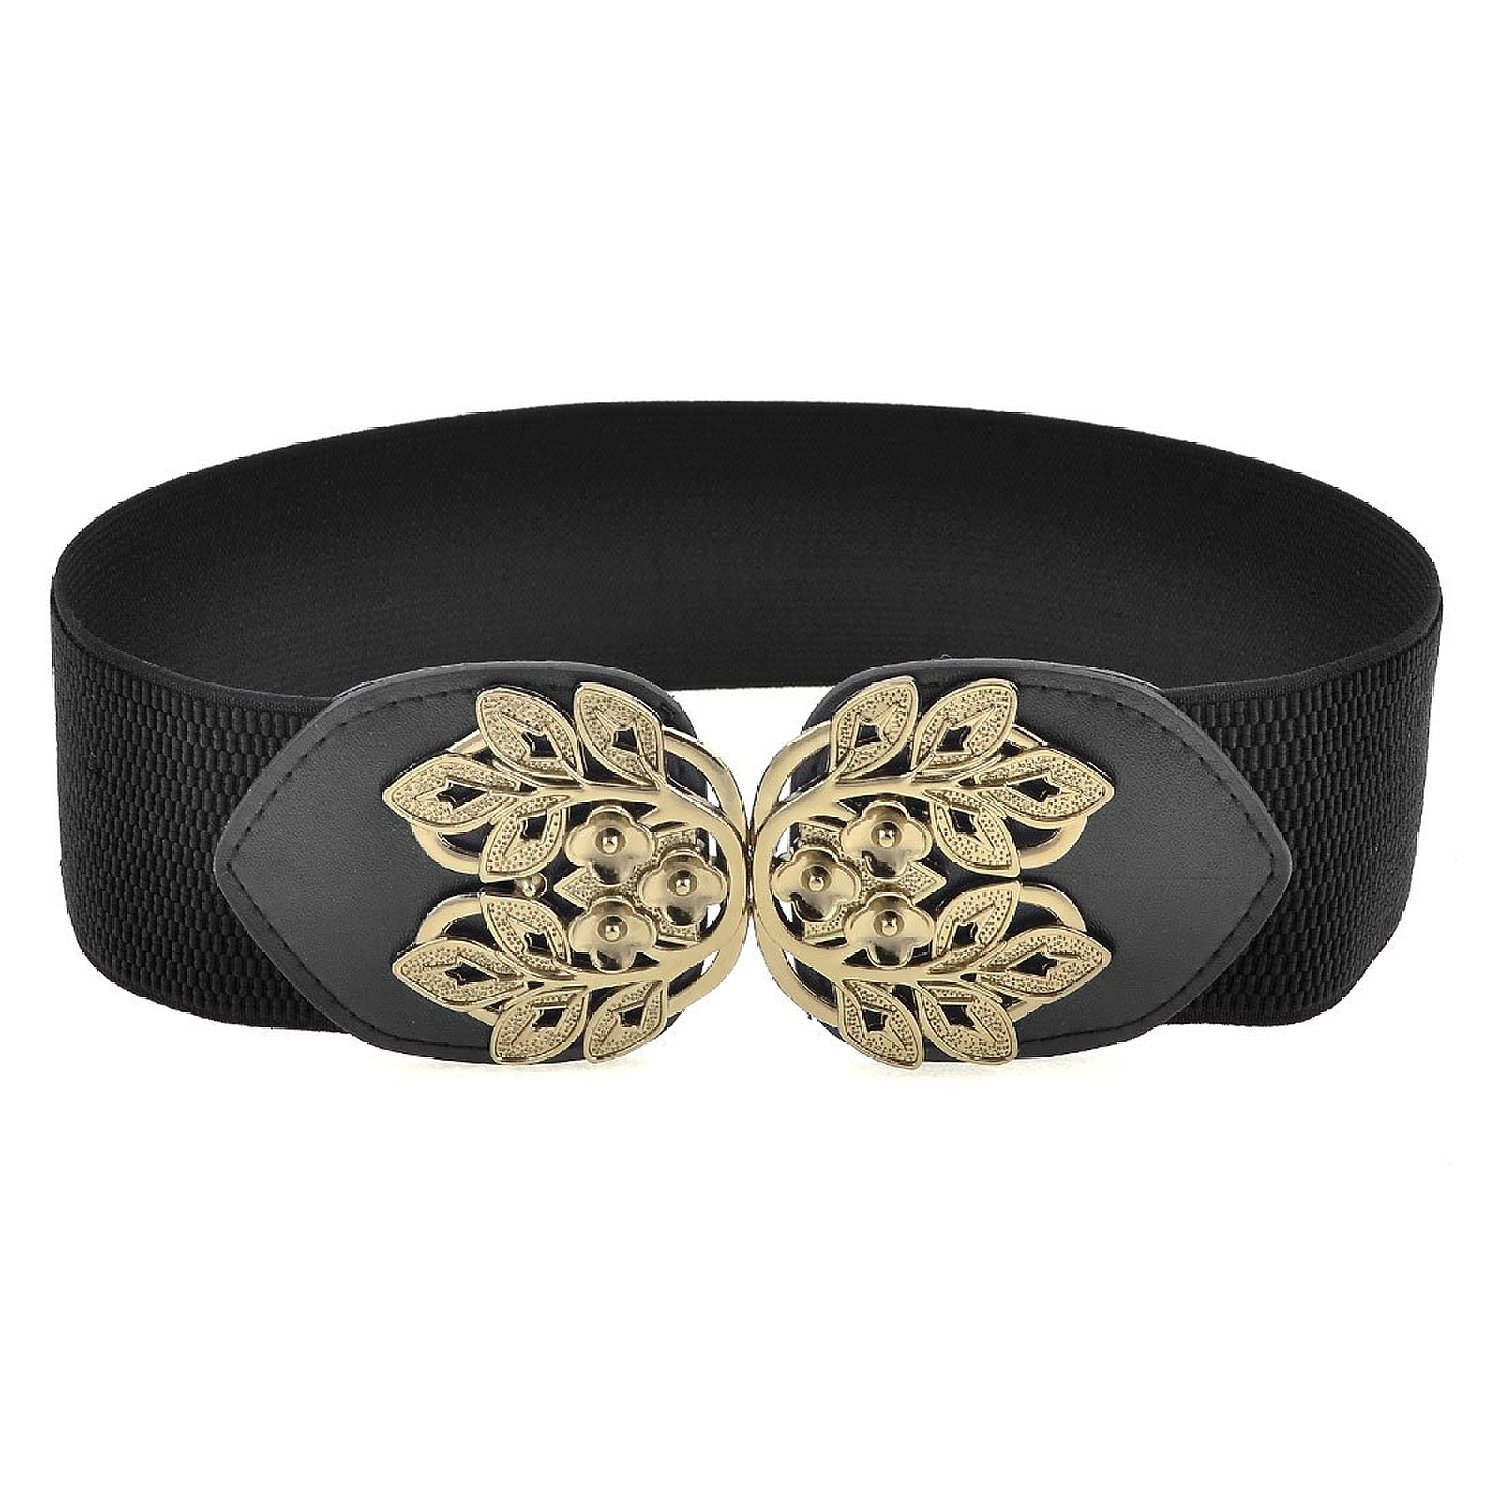 Promotion ! Elastic Fabric Band Plum Blossom Design Cinch Belt for Ladies,IN STOCK(China (Mainland))